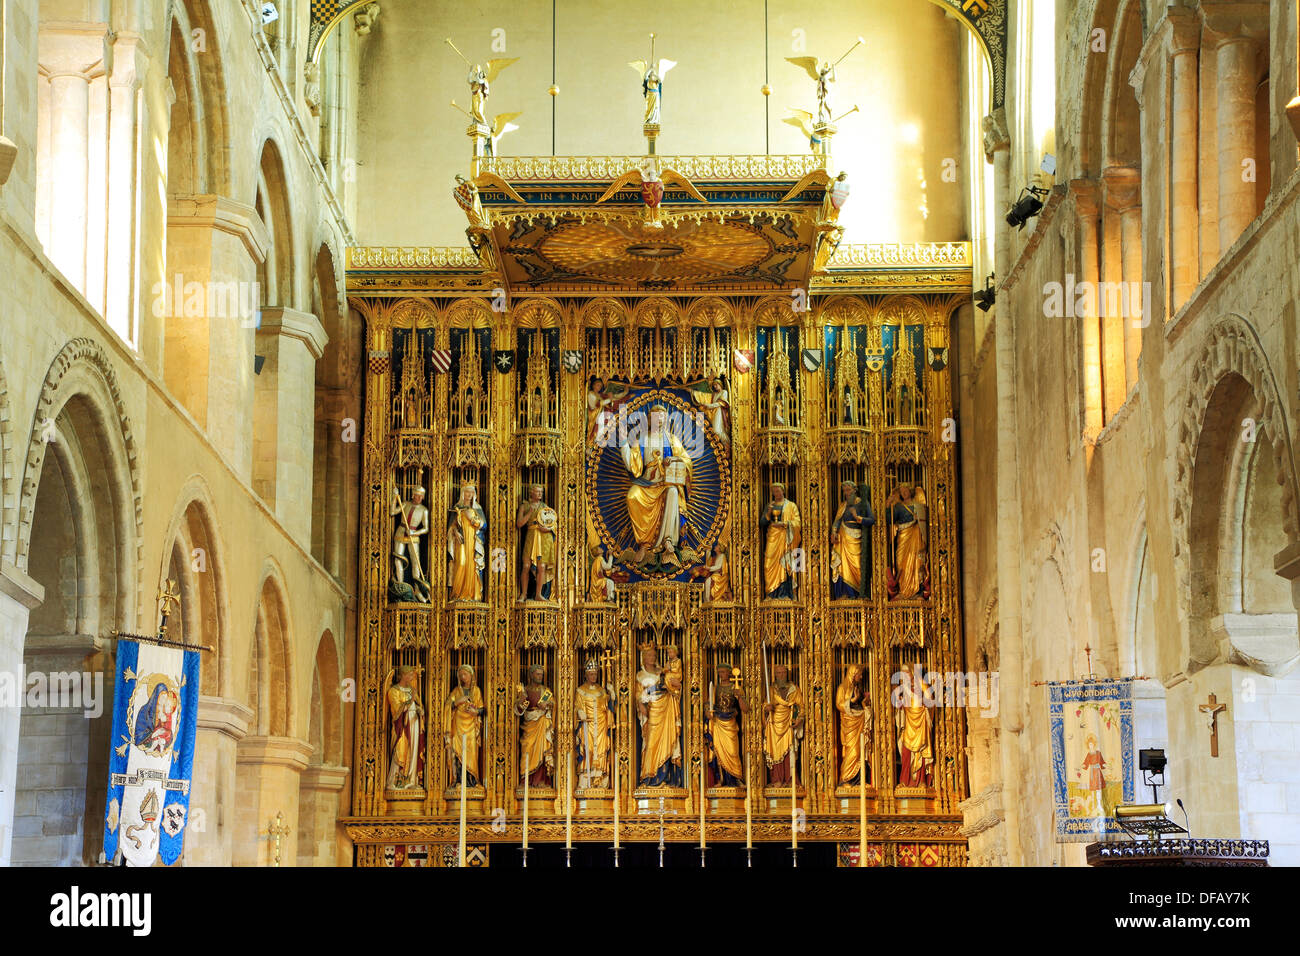 Wymondham Abbey, Norfolk, gilded Reredos by Sir Ninian Comper, early 20th century, England UK interior interiors - Stock Image